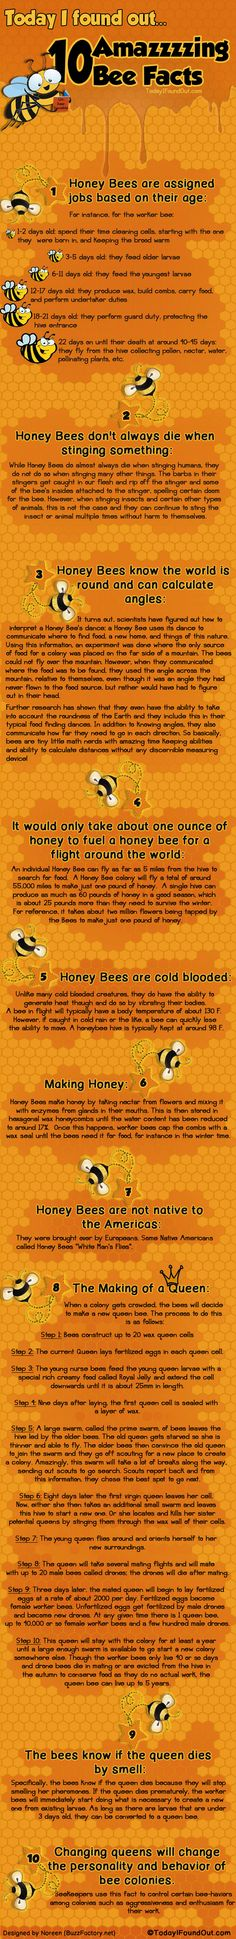 Facts About Bees.